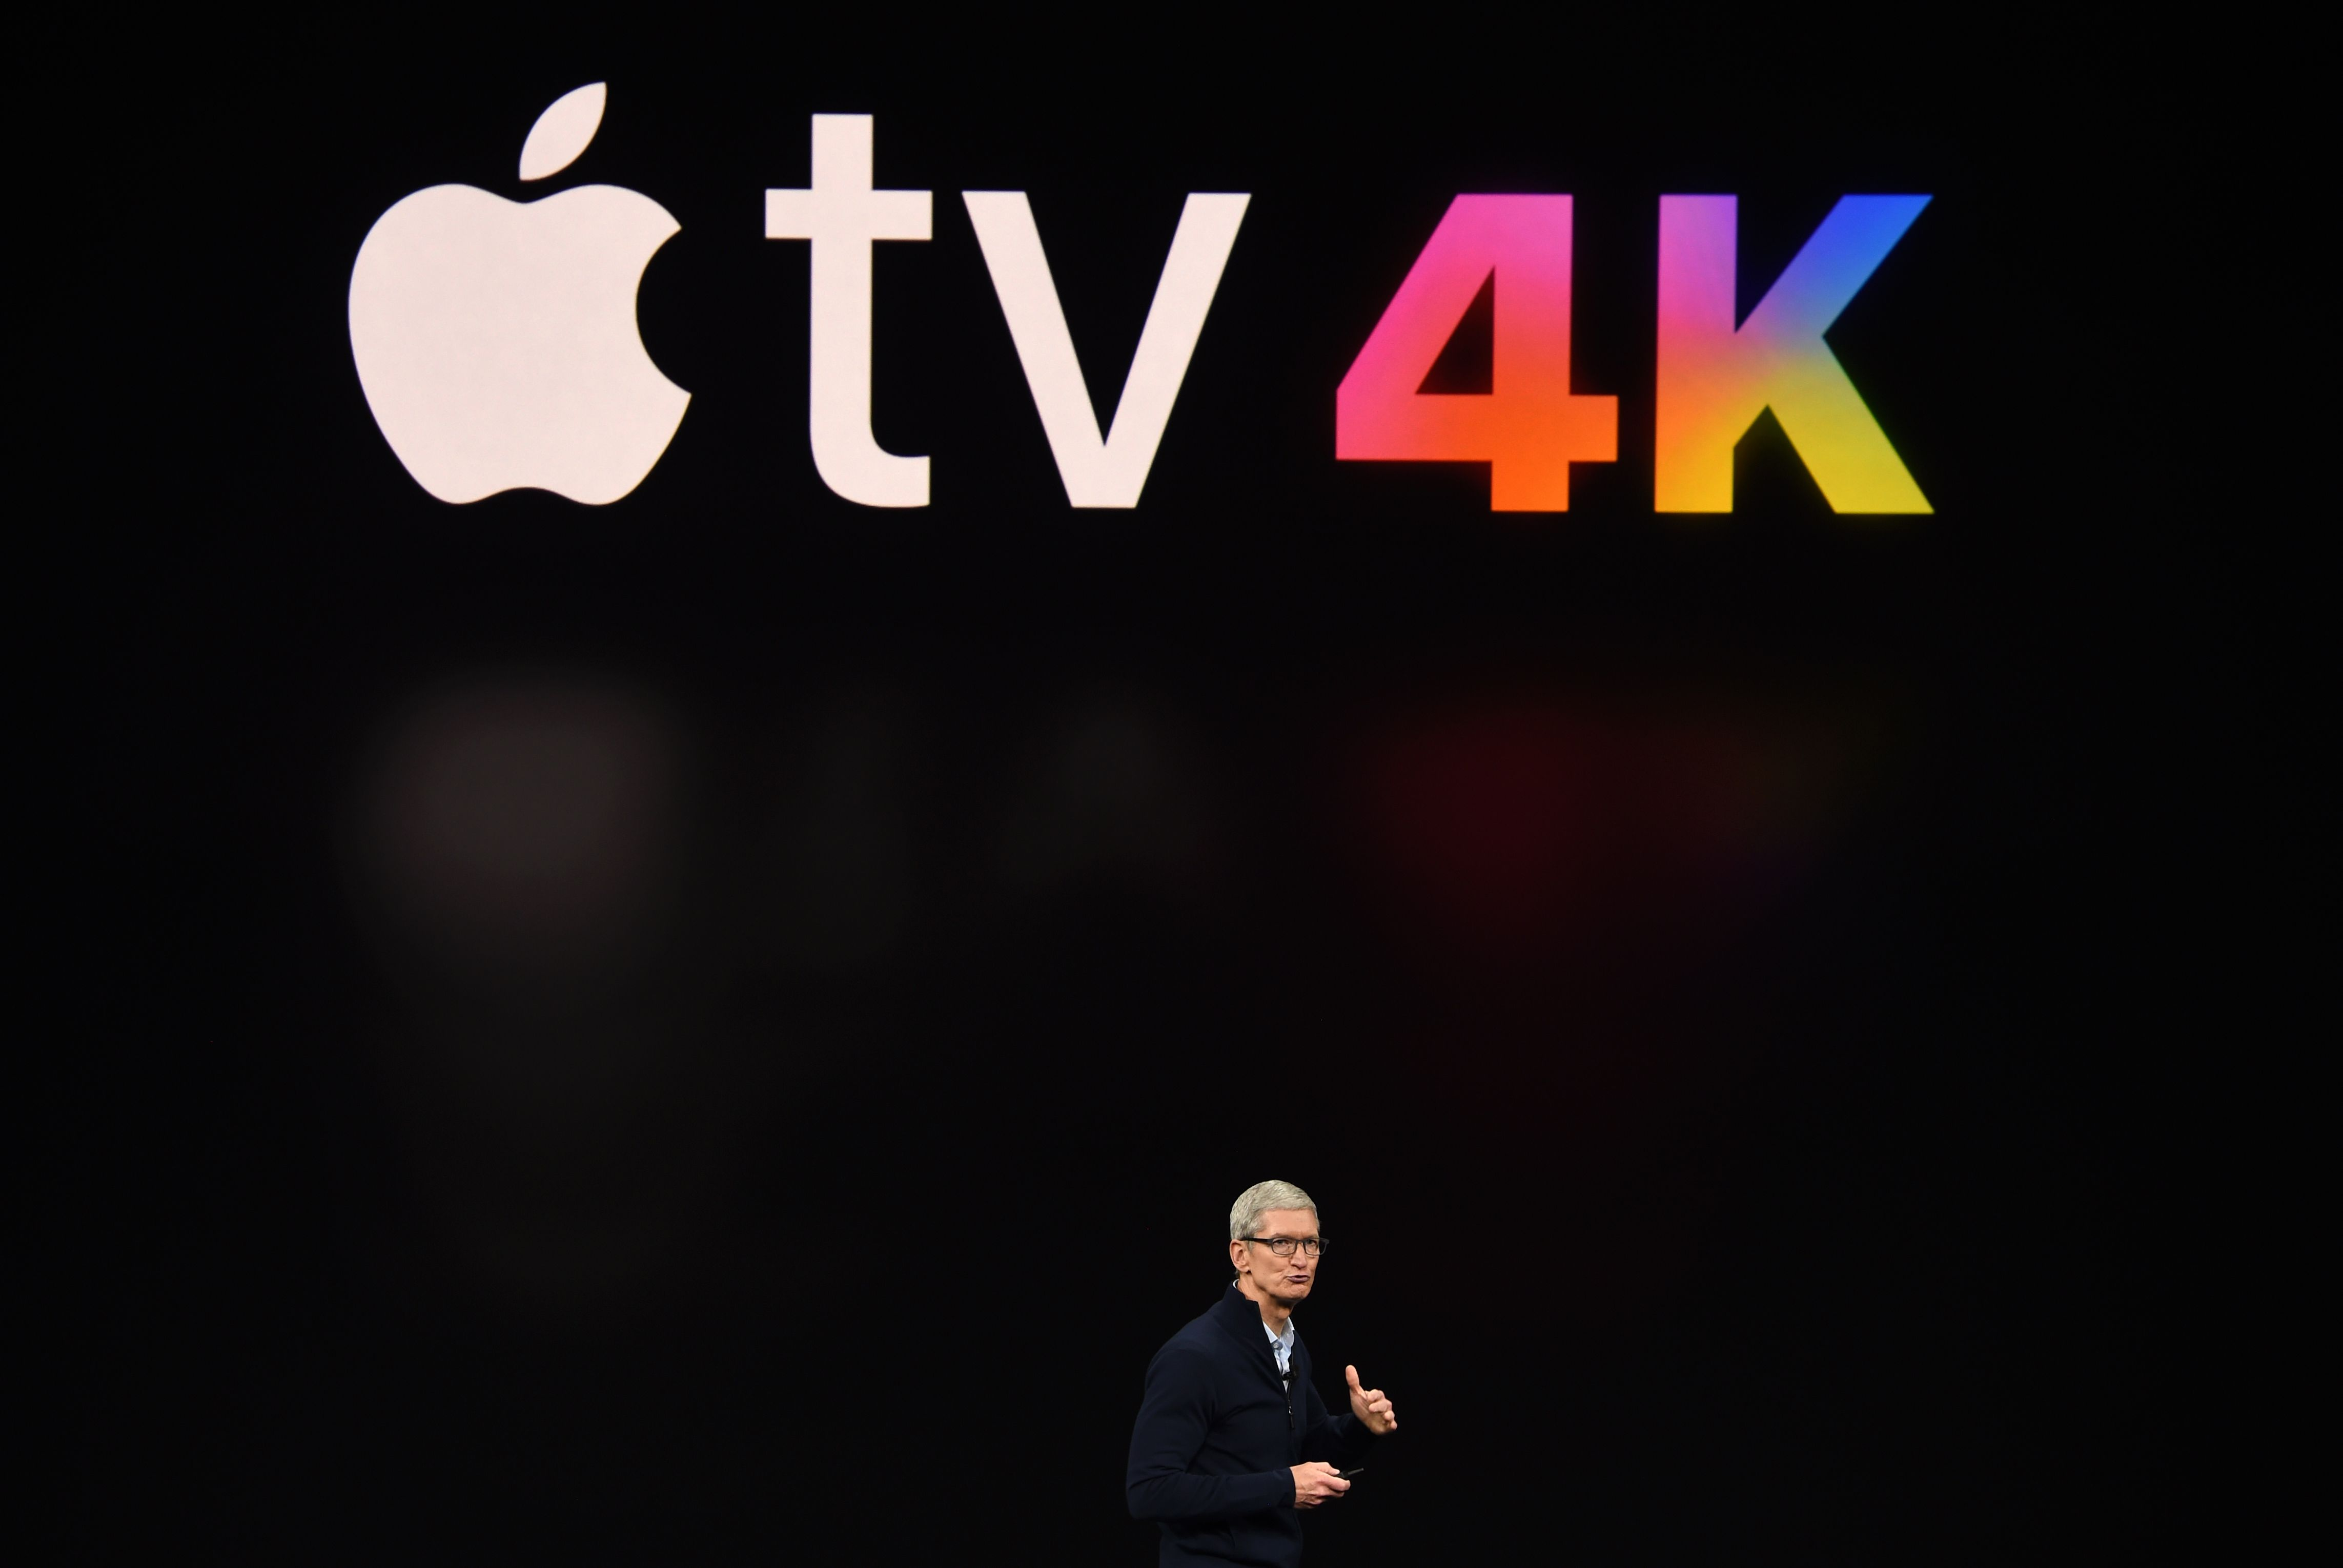 Apple CEO Tim Cook speaks about Apple TV during a media event at Apple's new headquarters in Cupertino, California on September 12, 2017.